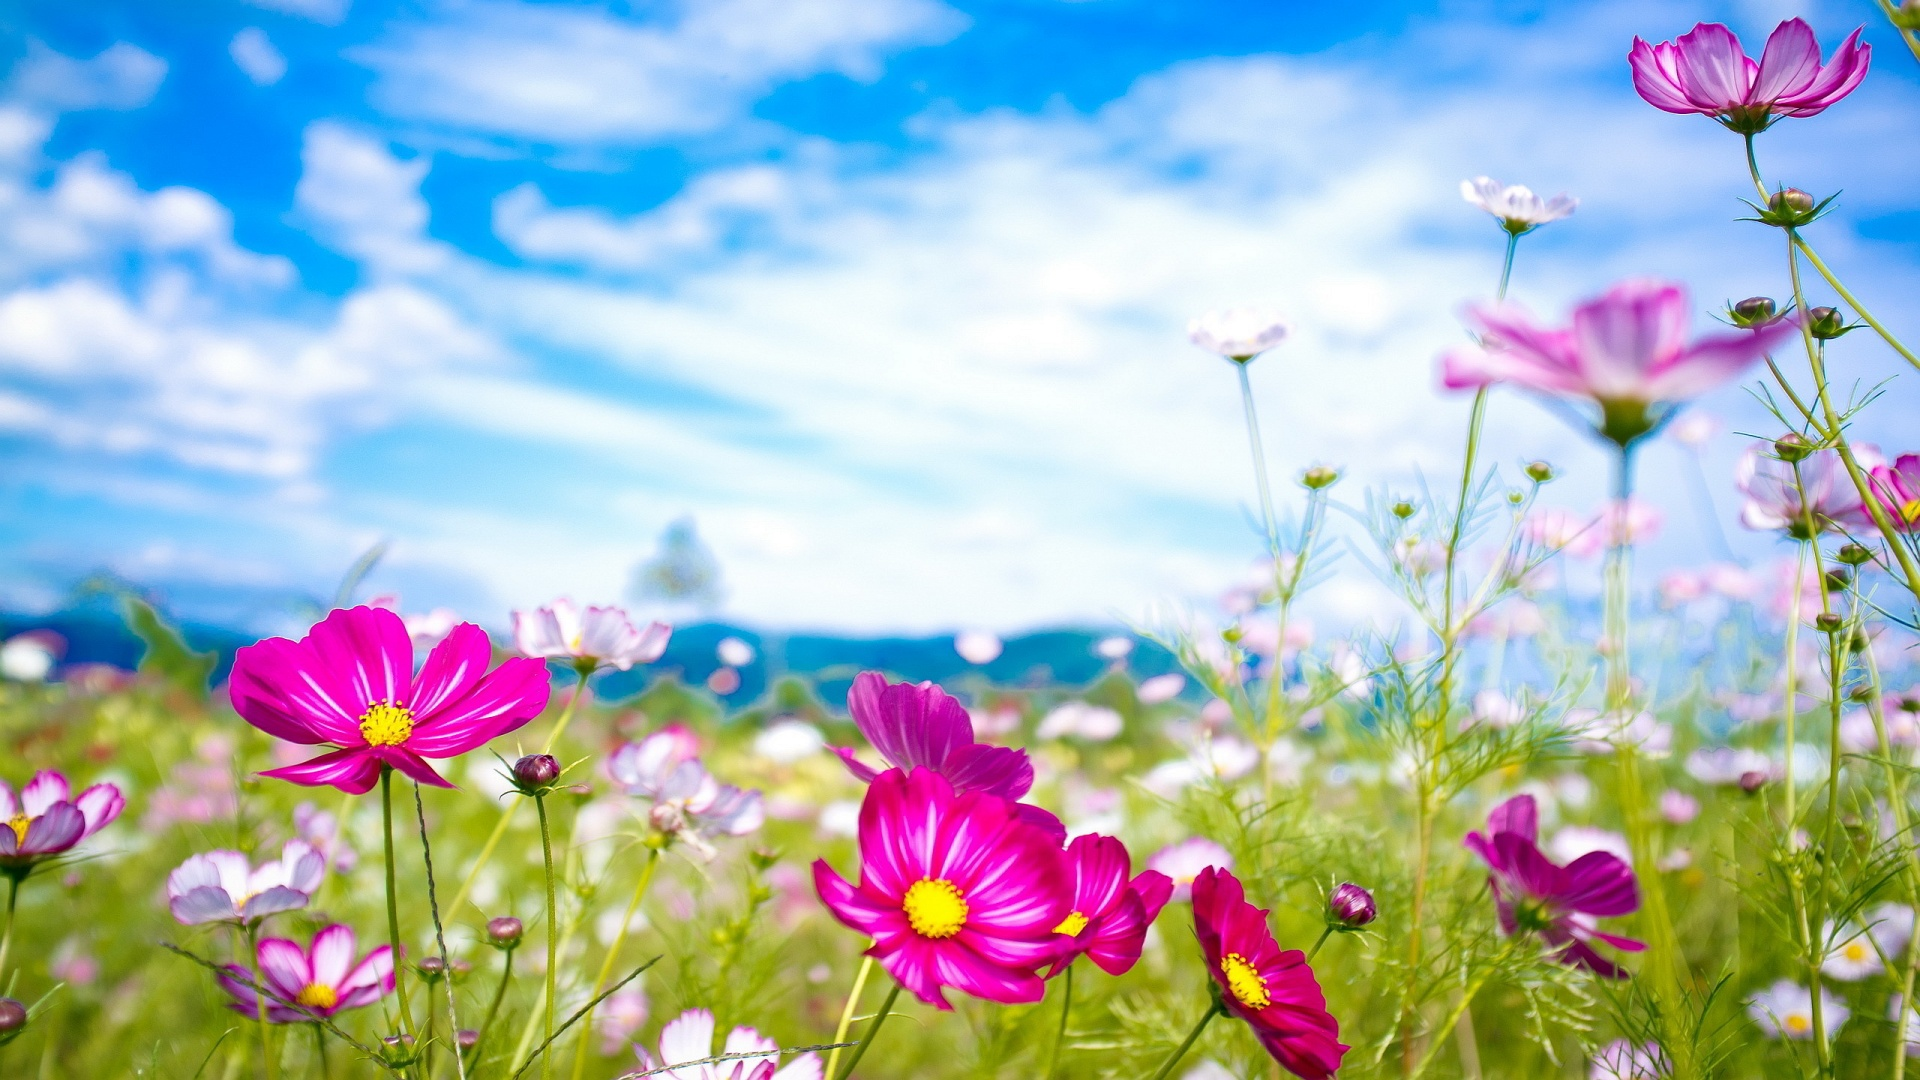 Summer Flowers Picture